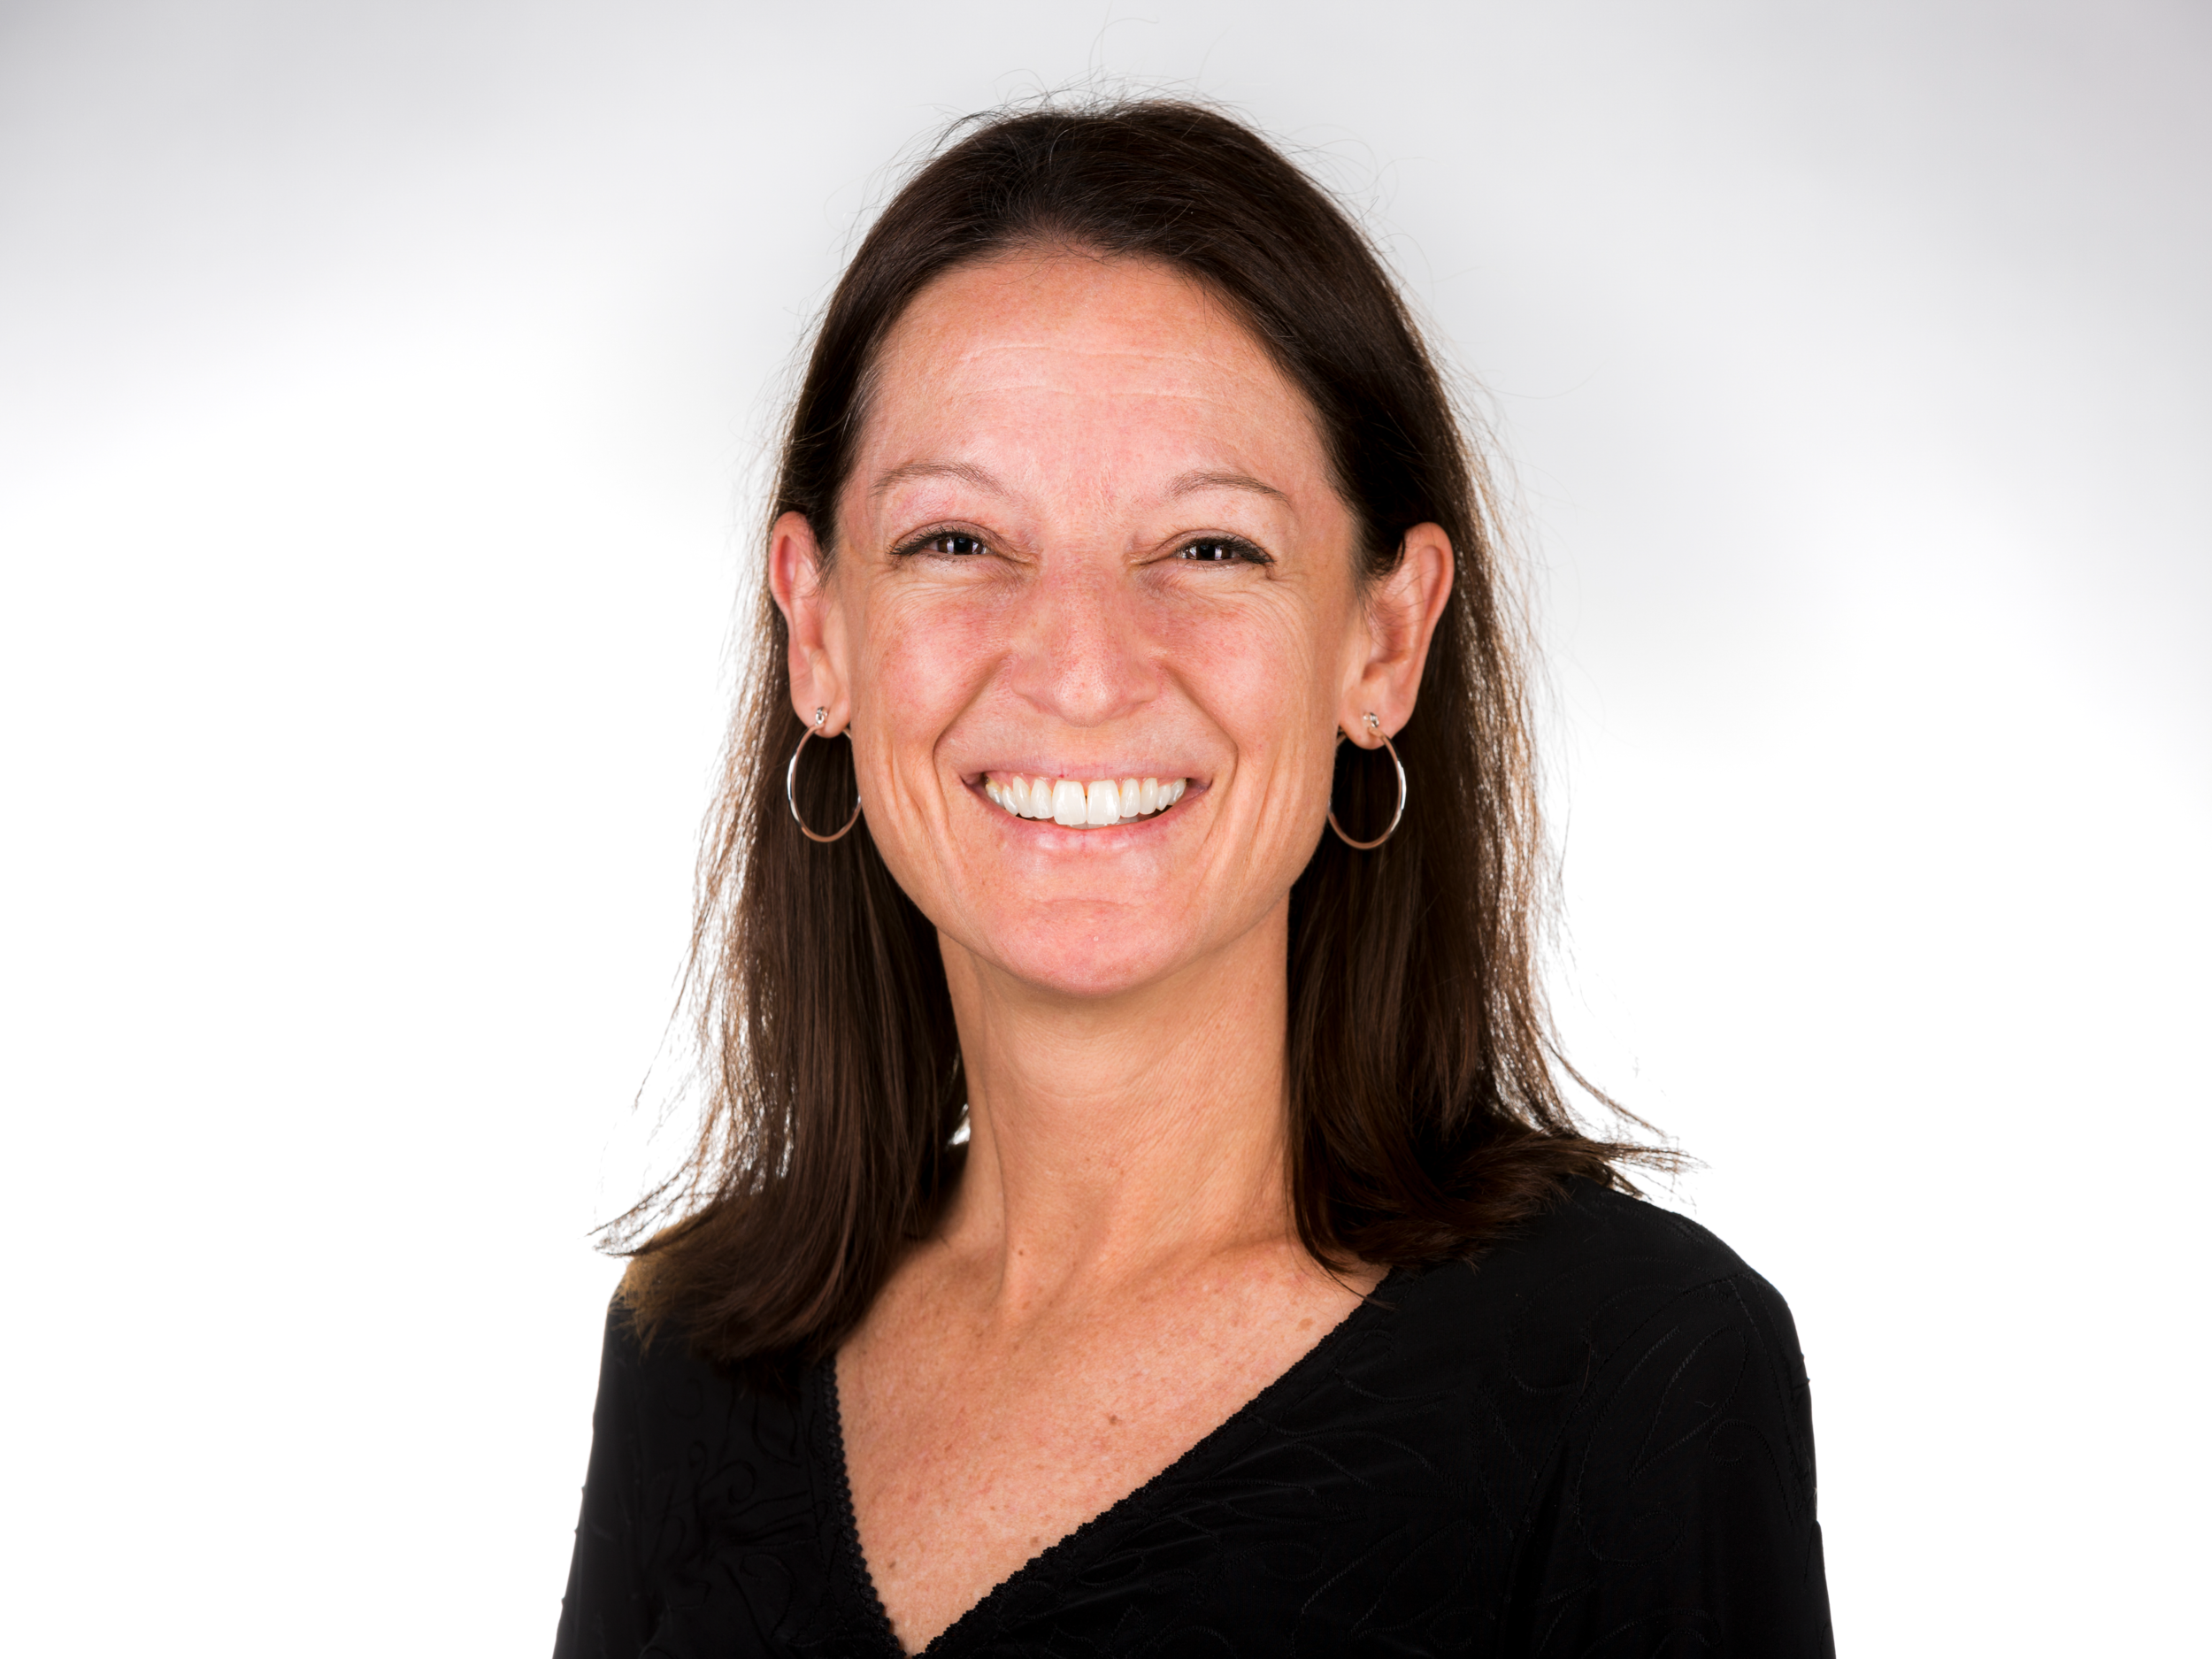 Terri Chace, CCC SLP, Founder - Terri Chace is the Co-owner of Estrella Day School, Eleutheria, LLC, The Wellness Center: Yoga & Therapies and PBIS Arizona. Ms. Chace is a licensed Speech Language Pathologist.